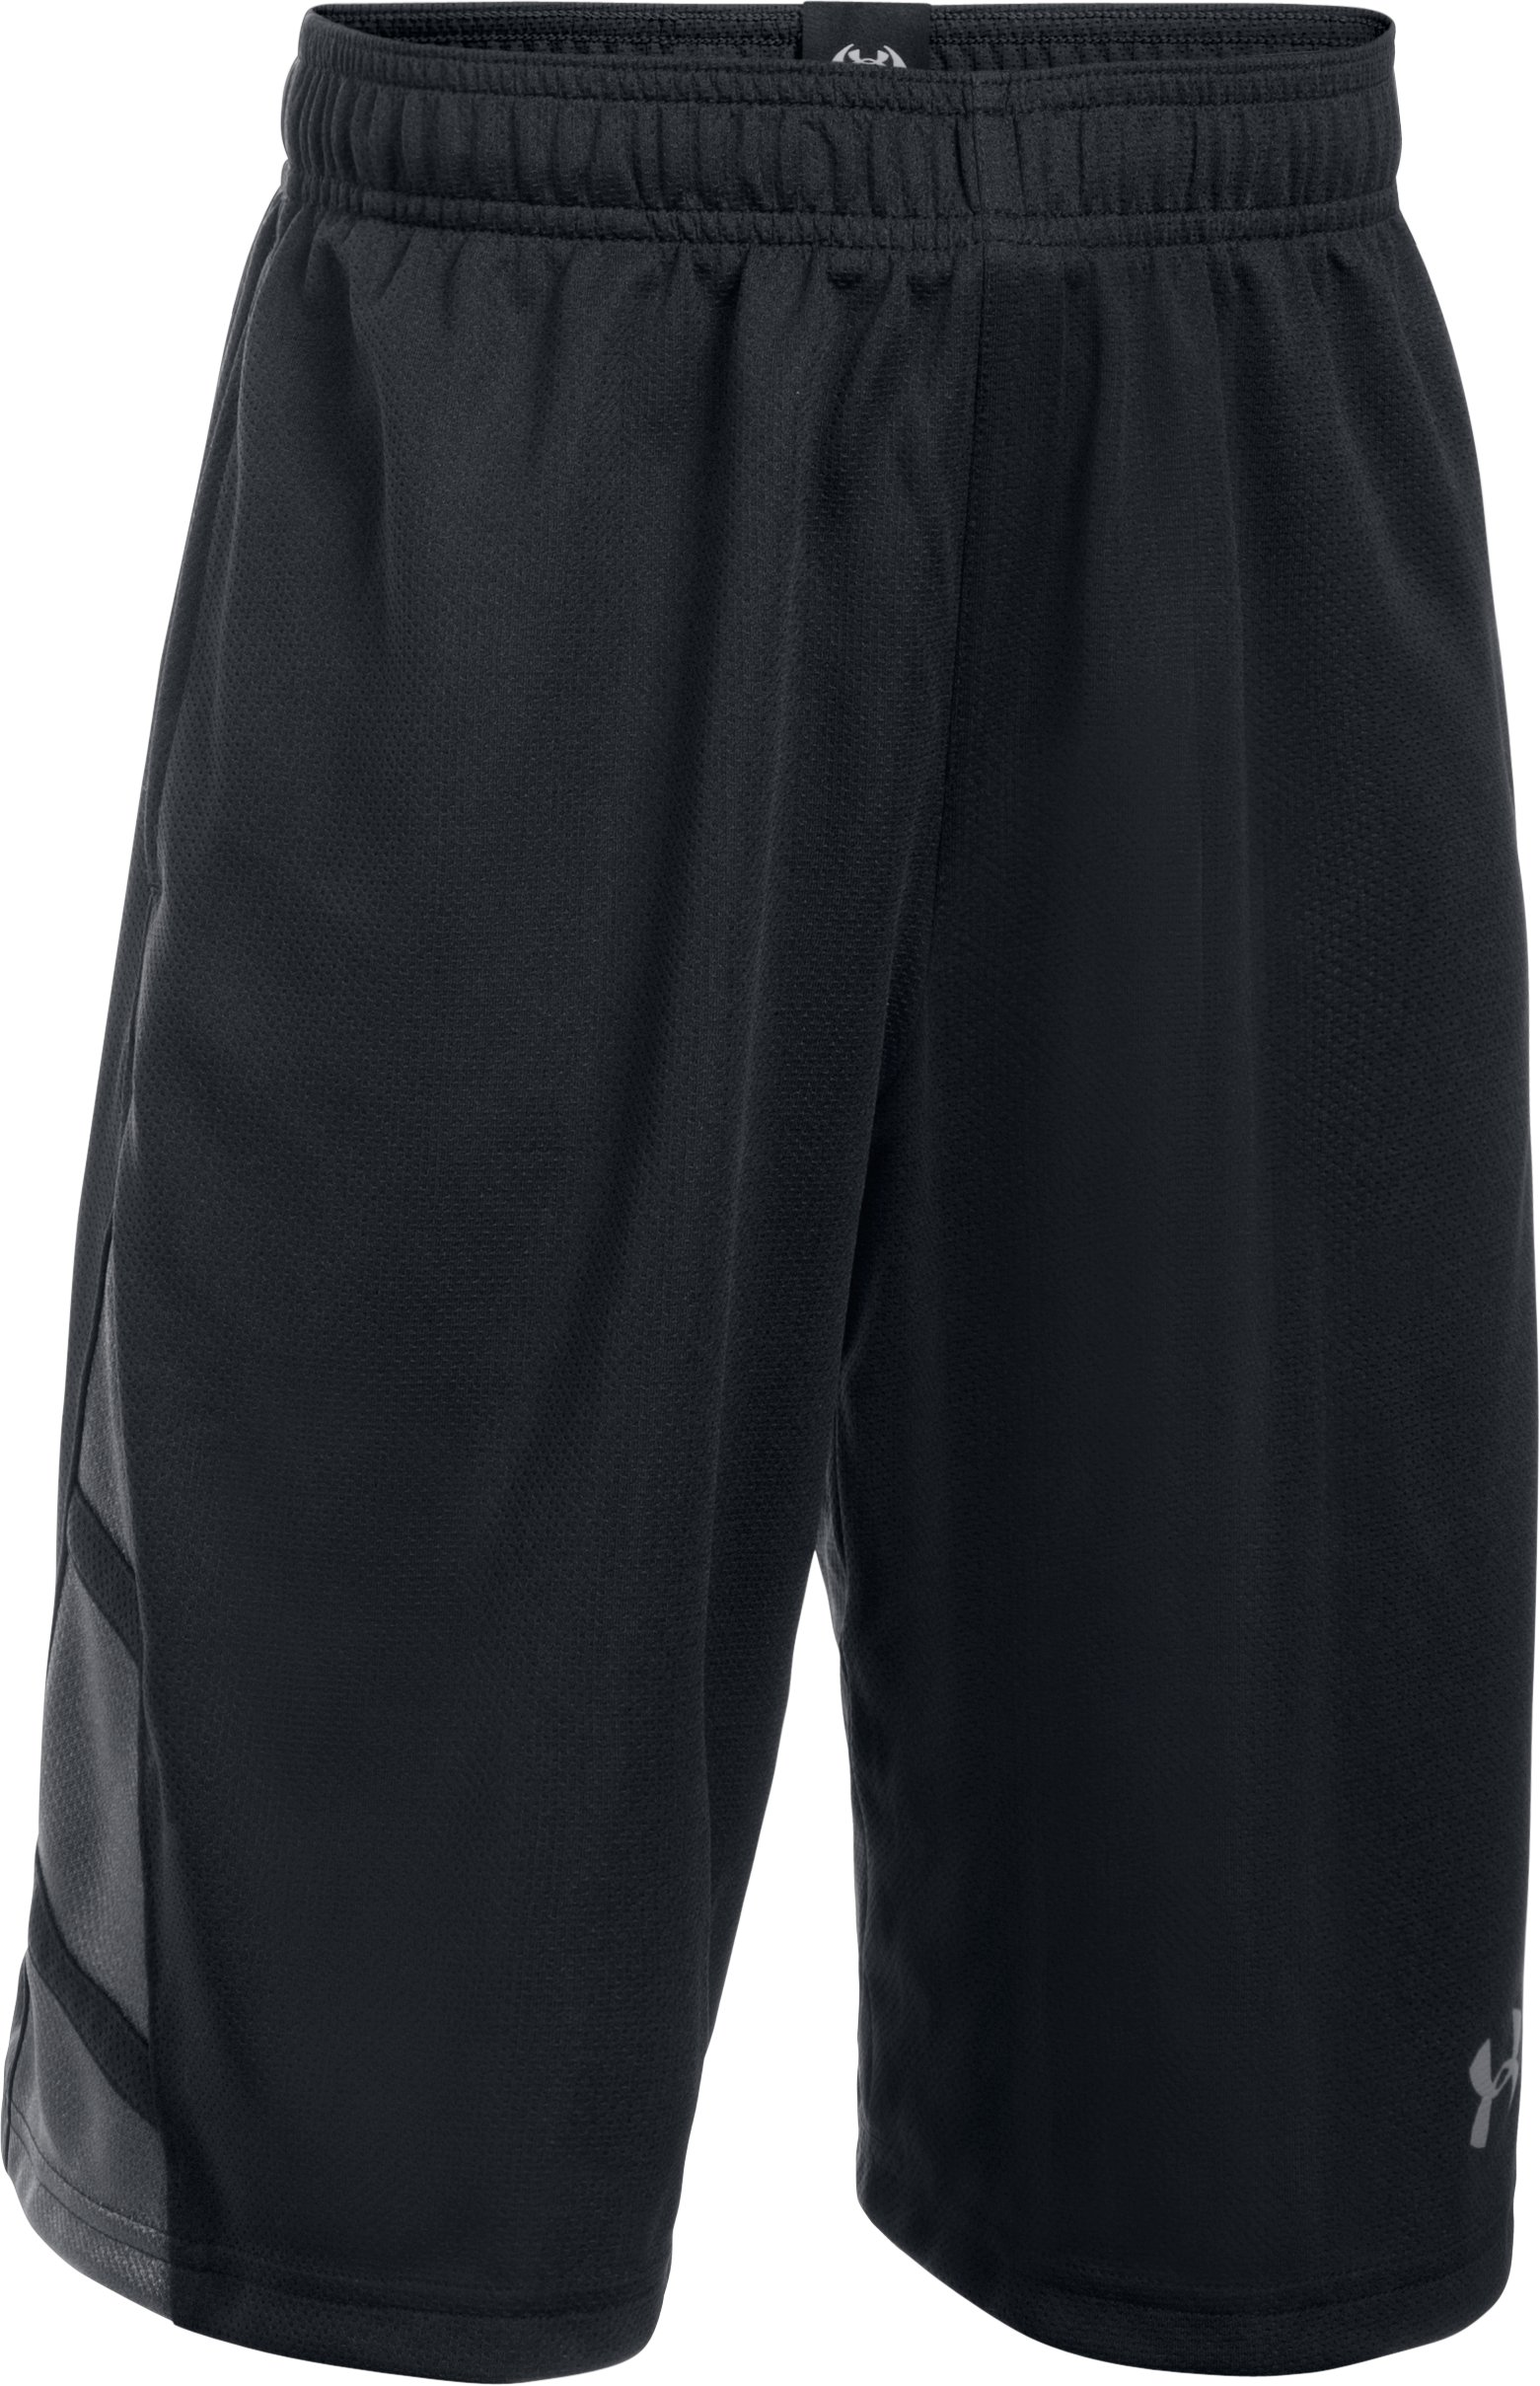 Boys' UA Triple Double Shorts, Black